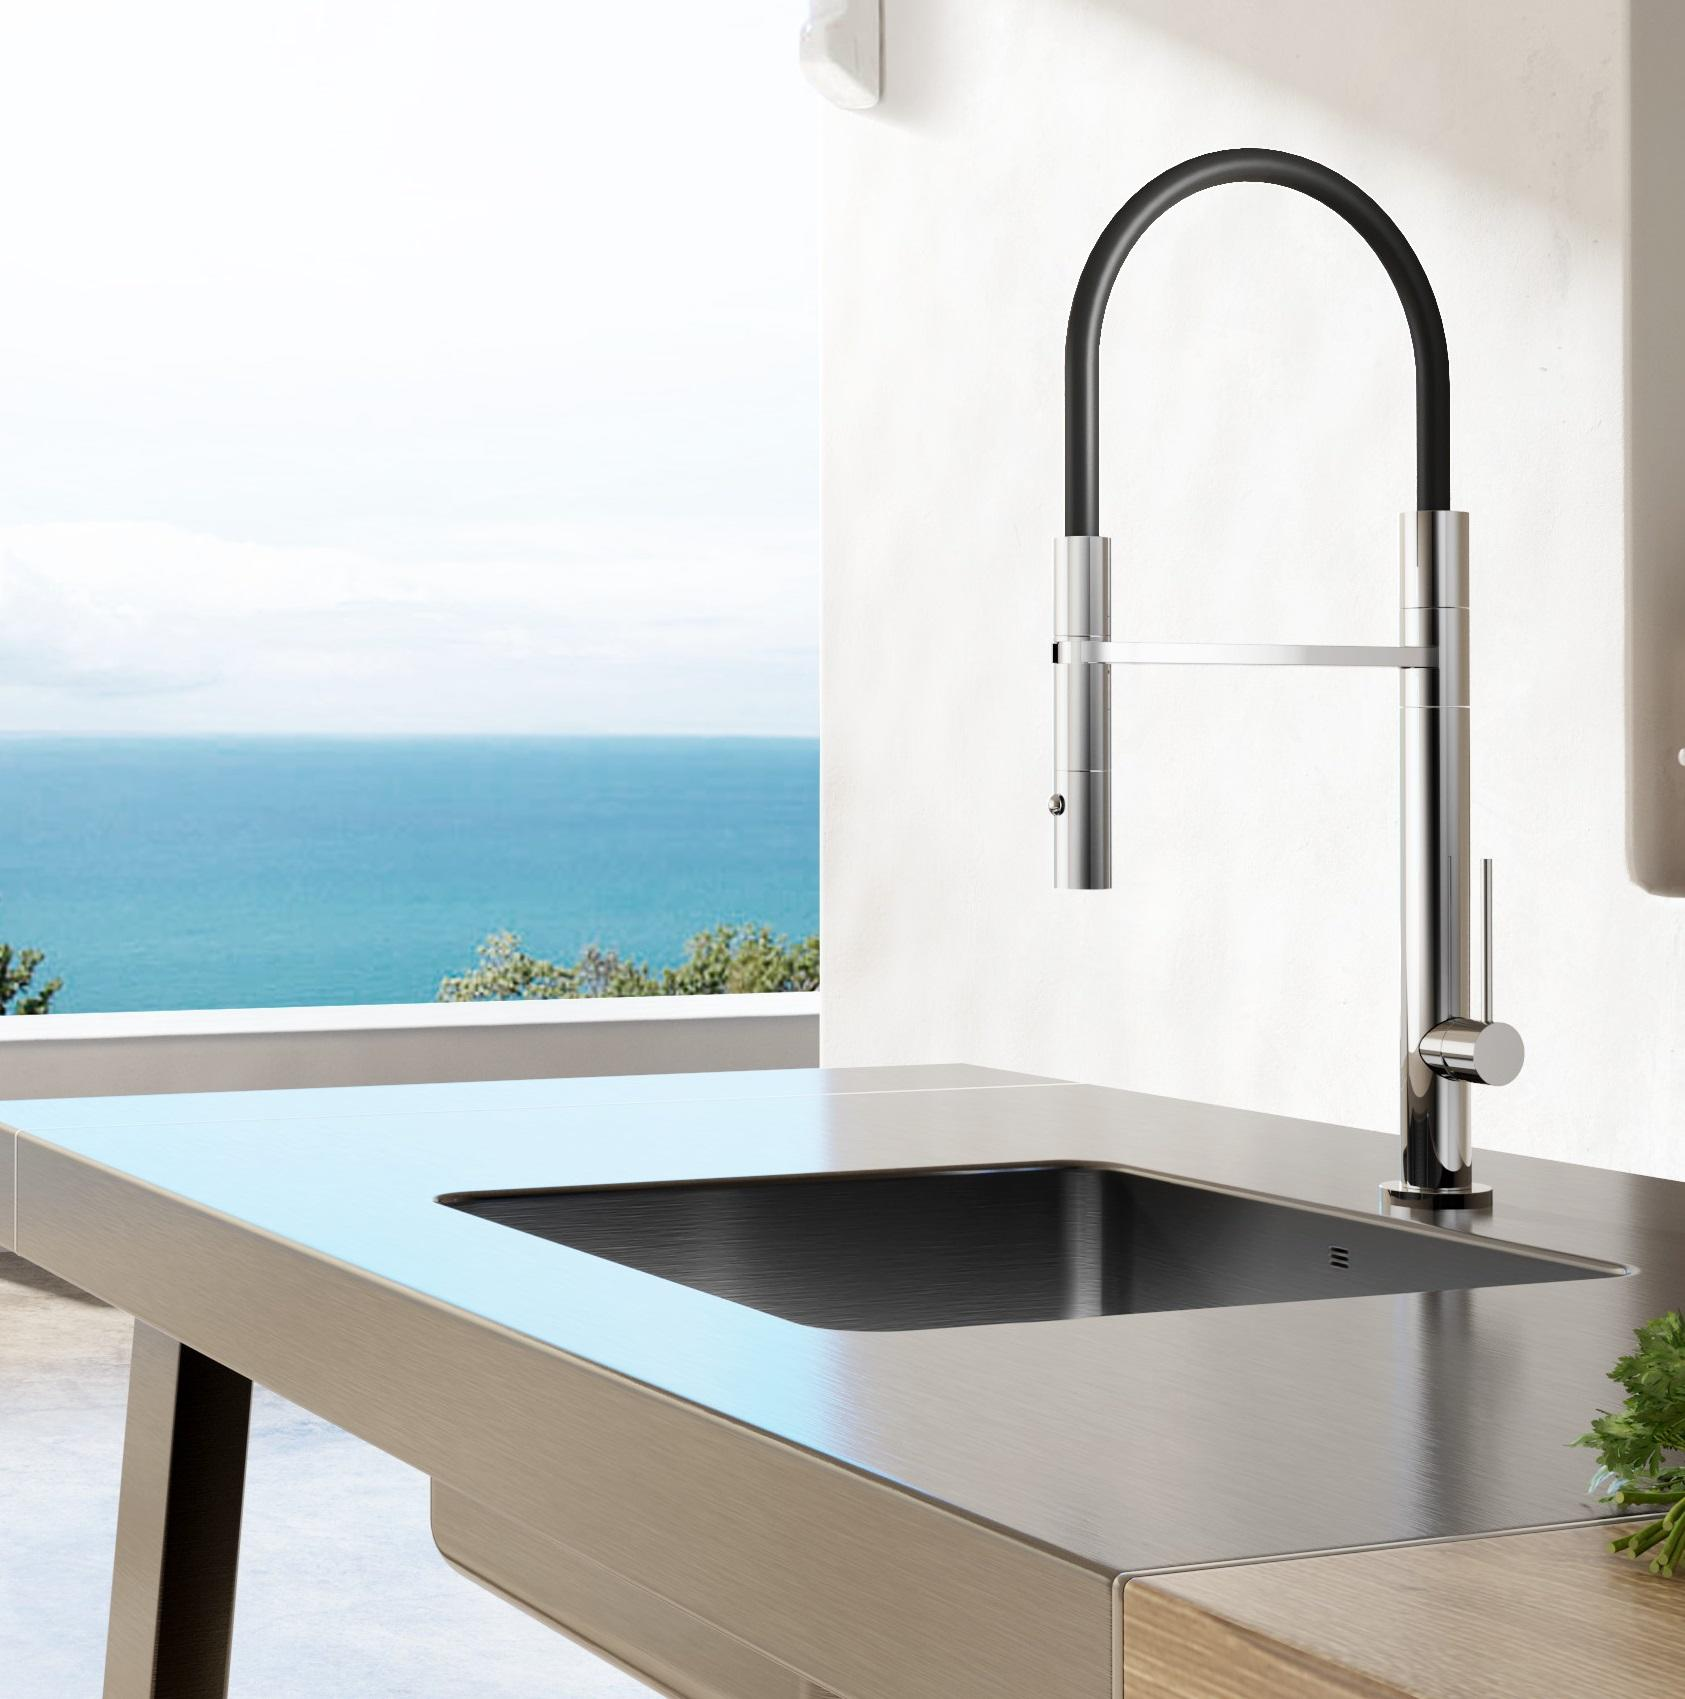 stainless_steel_316_marine_grade_tap_kitchen_sink_modern